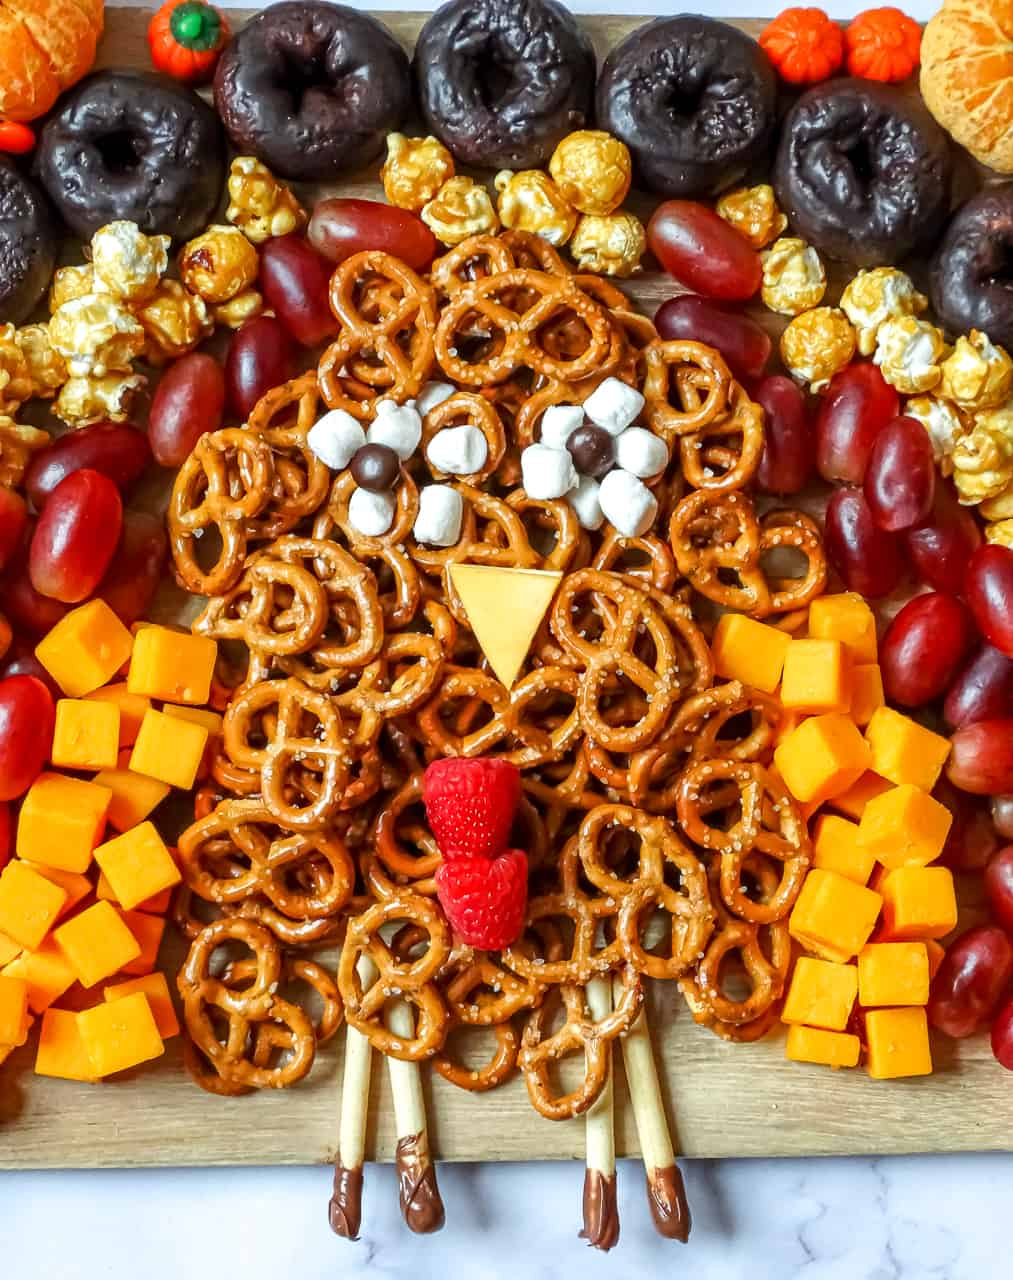 a turkey shaped from pretzels and cheese cubes as a thanksgiving appetizer for kids